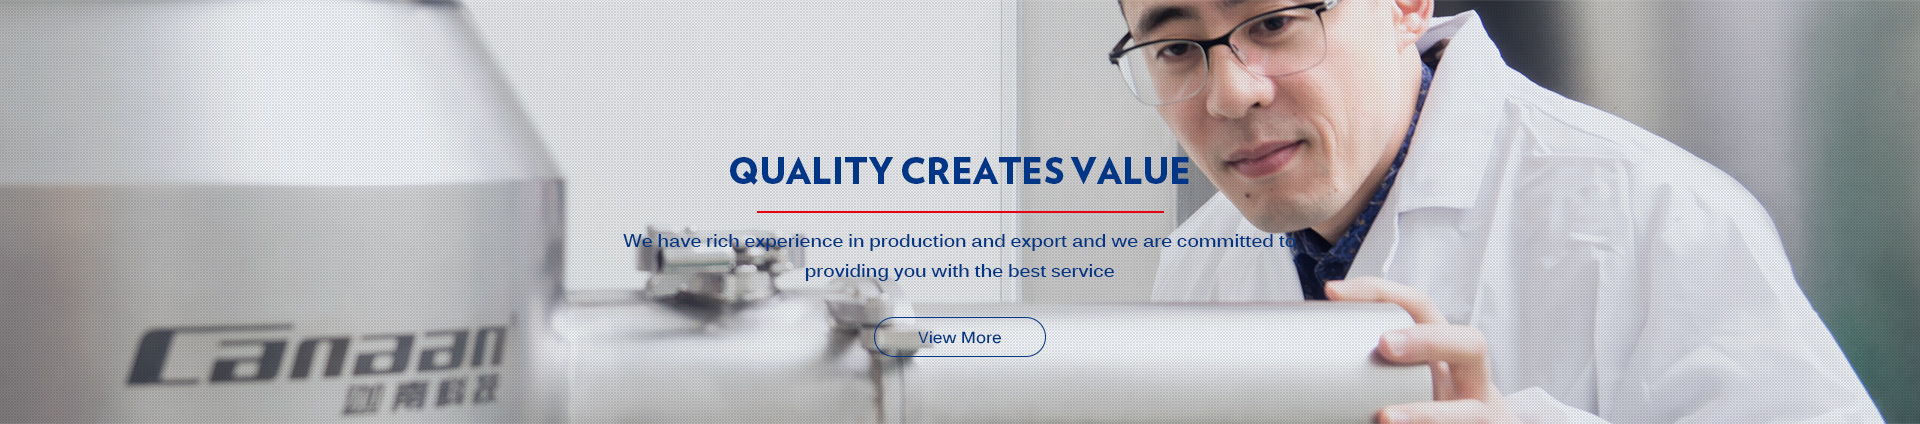 We have rich experience in production and export, promise you a good reputation and high quality service!